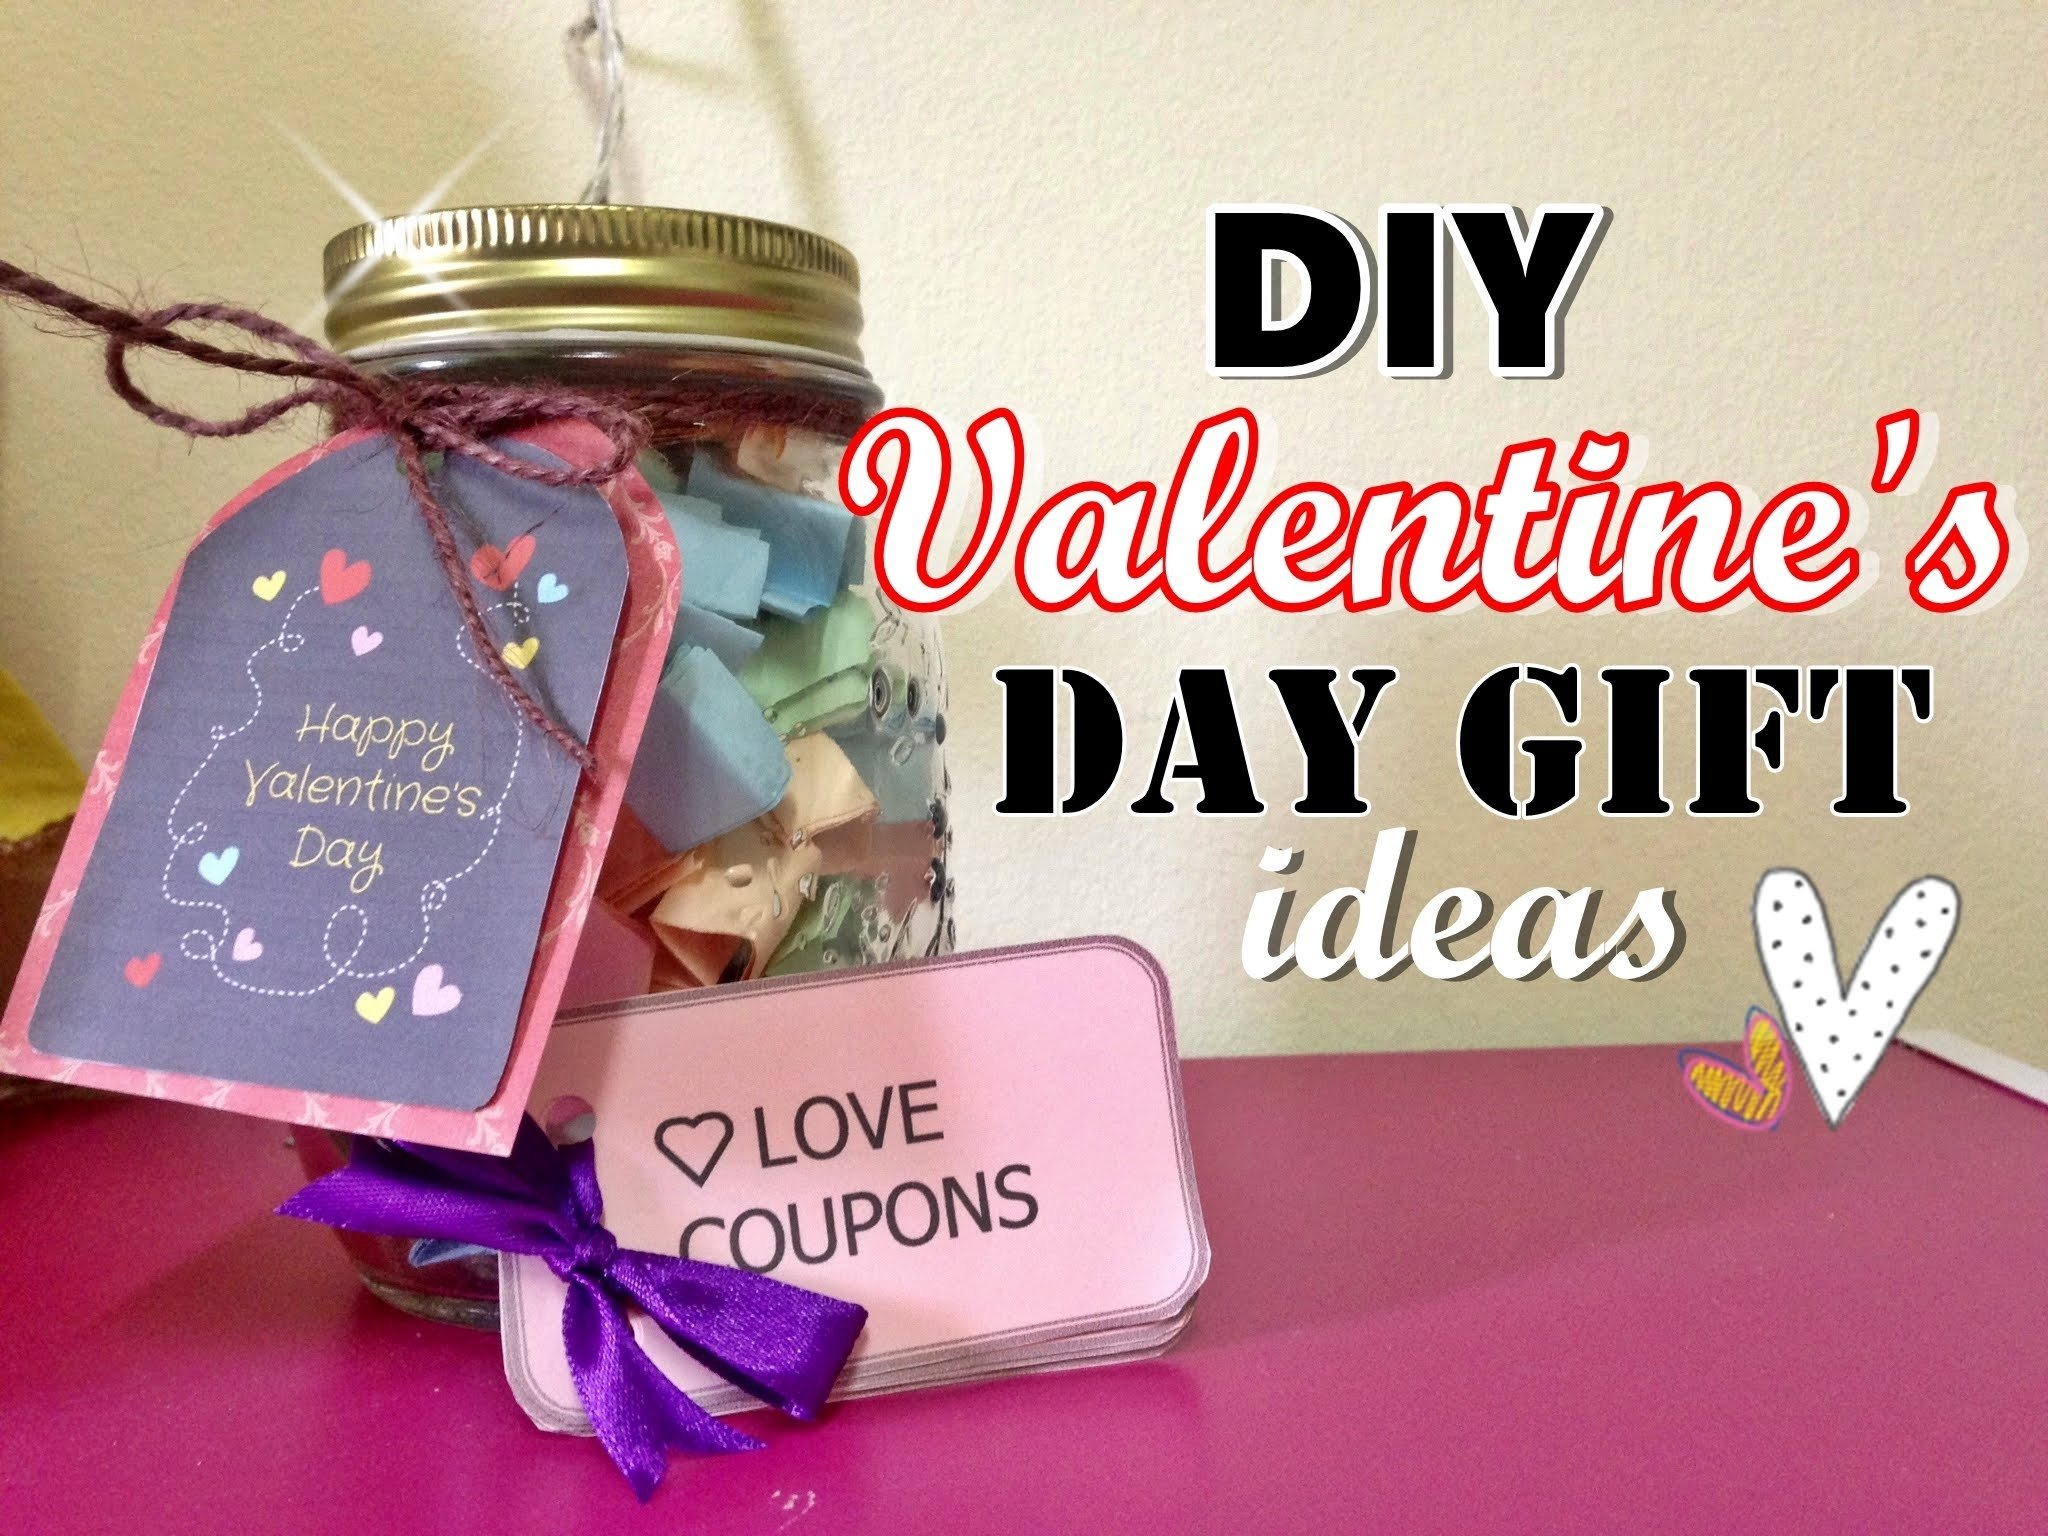 10 Pretty Cheap Valentines Day Ideas For Her